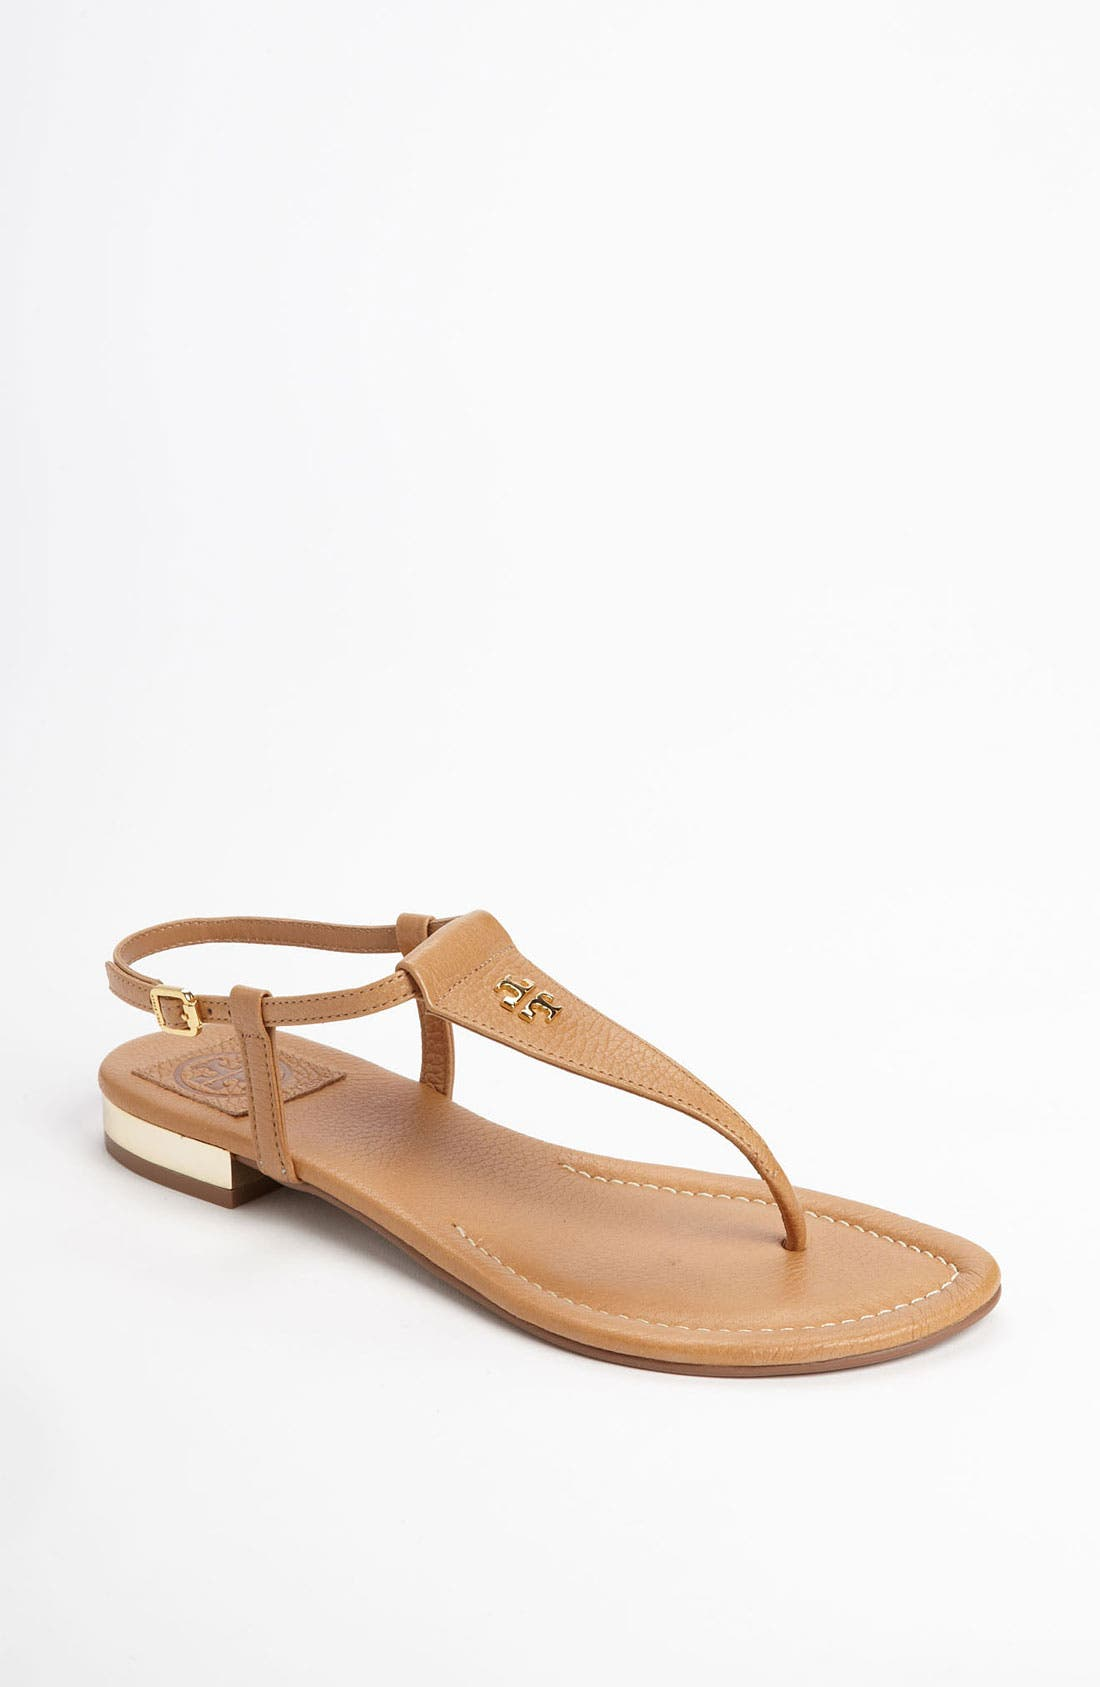 Alternate Image 1 Selected - Tory Burch 'Britton' Sandal